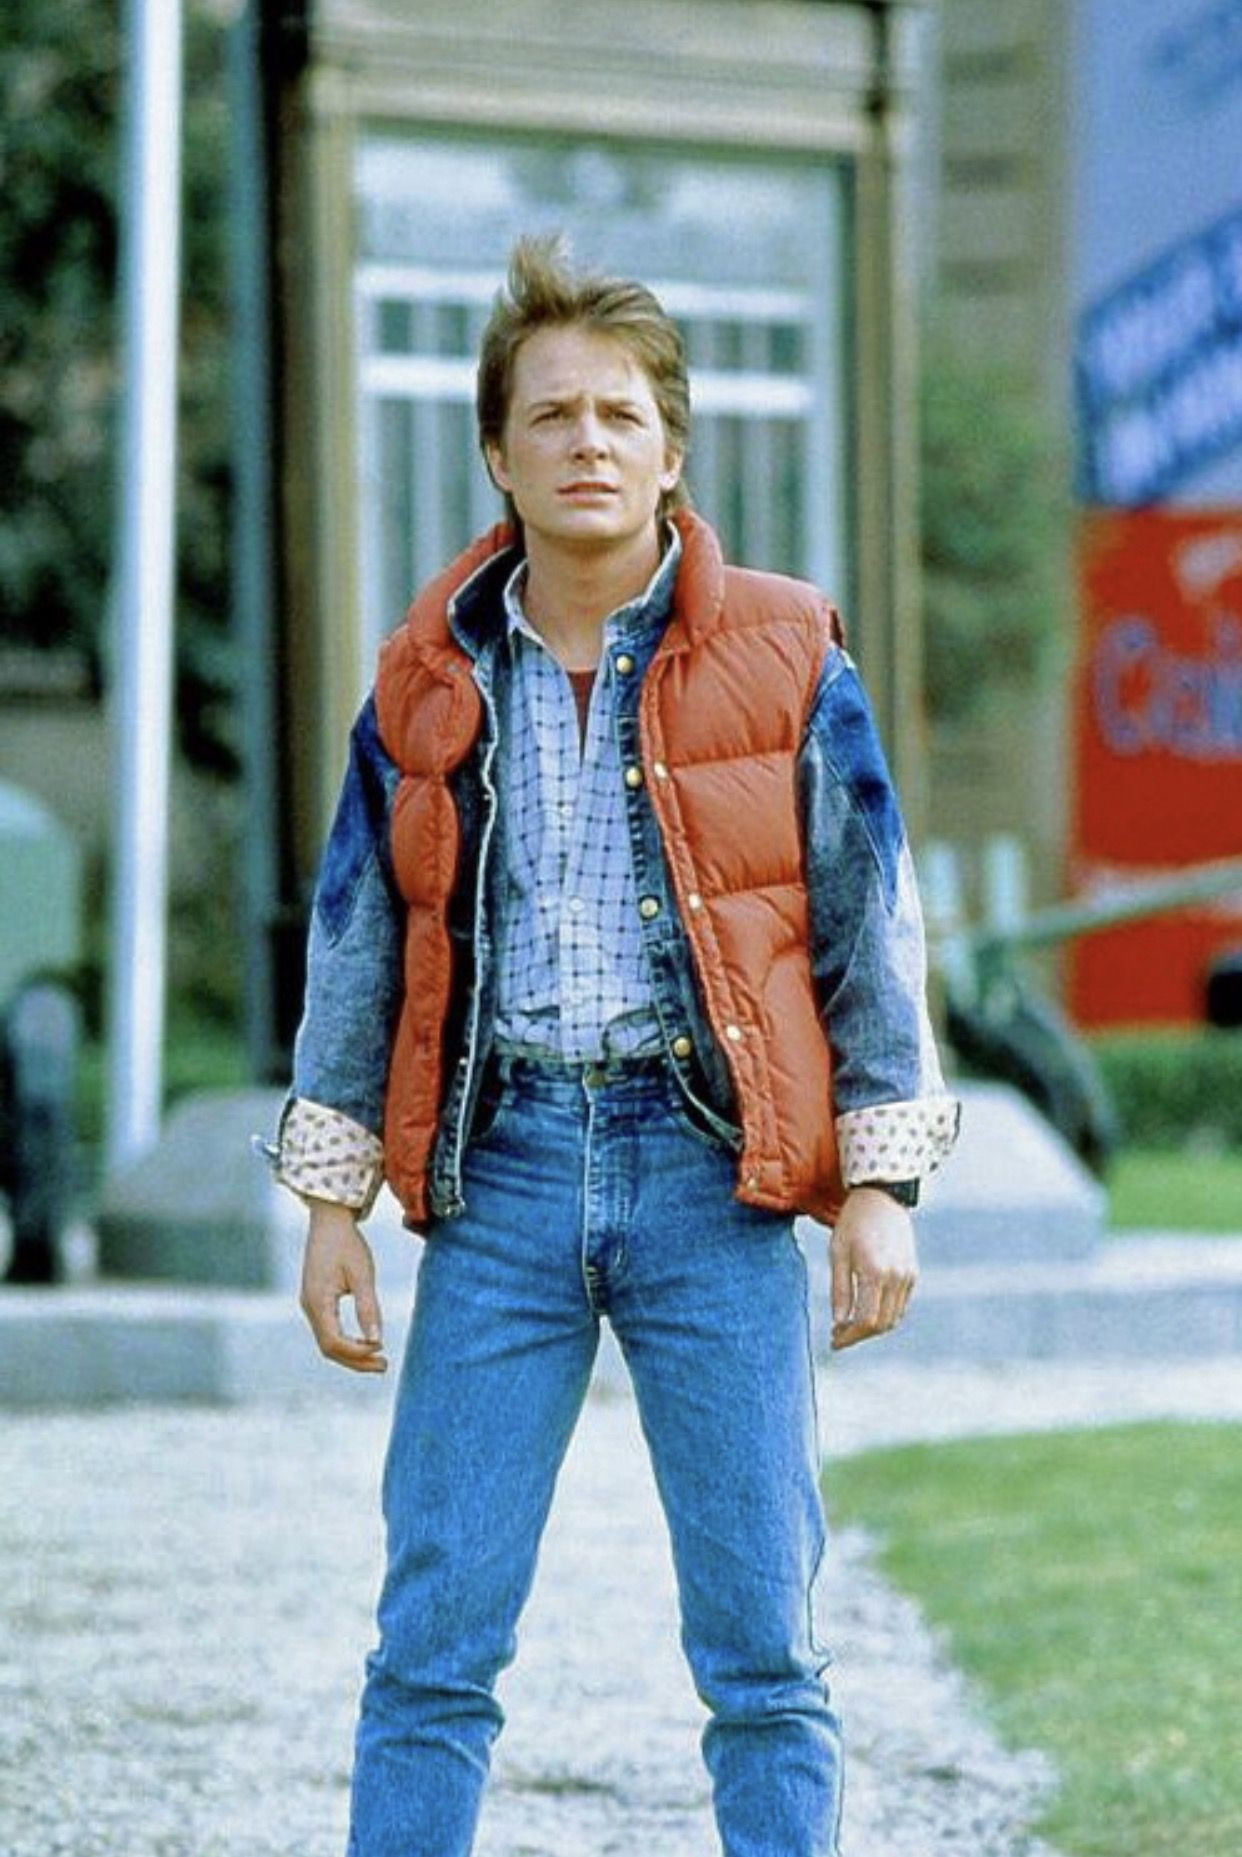 Back To The Future Marty Mcfly Costume Marty Mcfly Back To The Future [ 1857 x 1242 Pixel ]